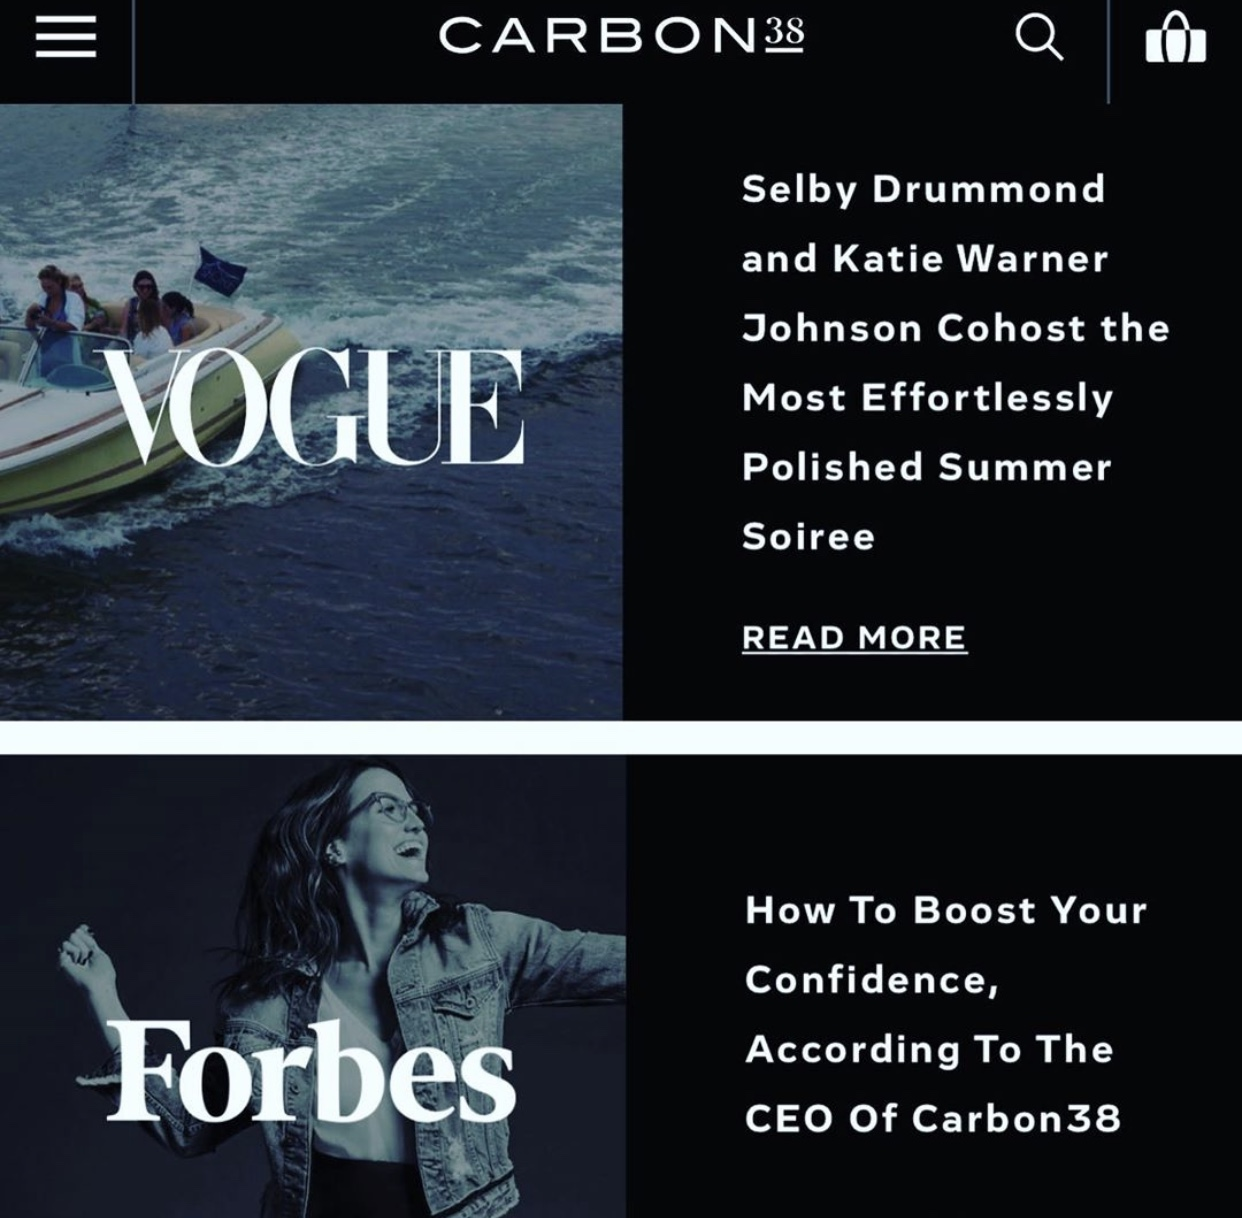 Carbon38 vogue Forbes promo code shawn rene zimmerman